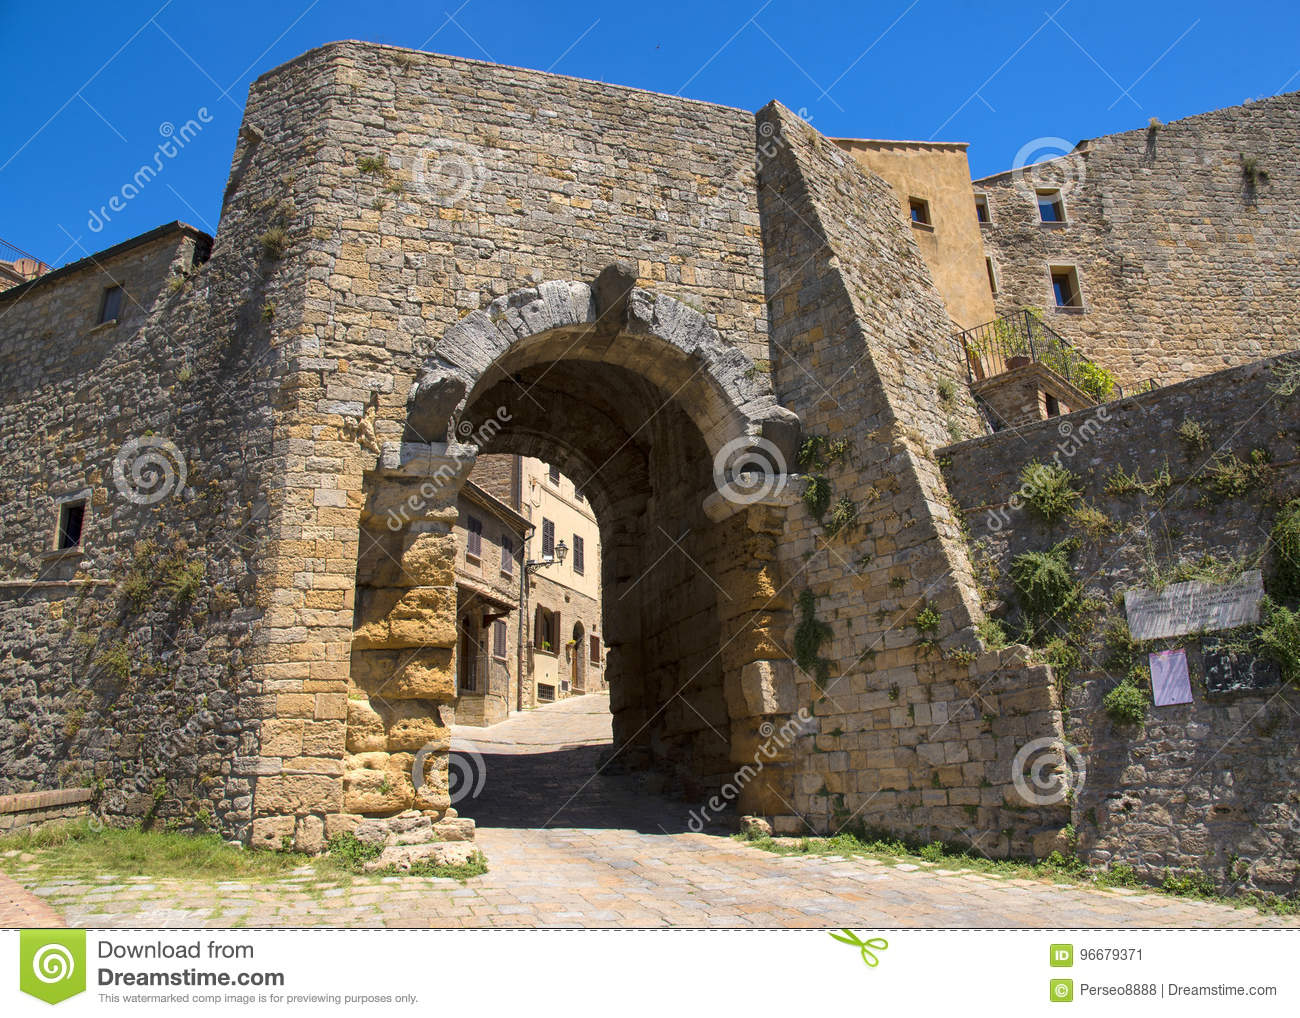 Porta all` Arco, one of city`s gateways, is the most famous Etruscan architectural monument in Volterra